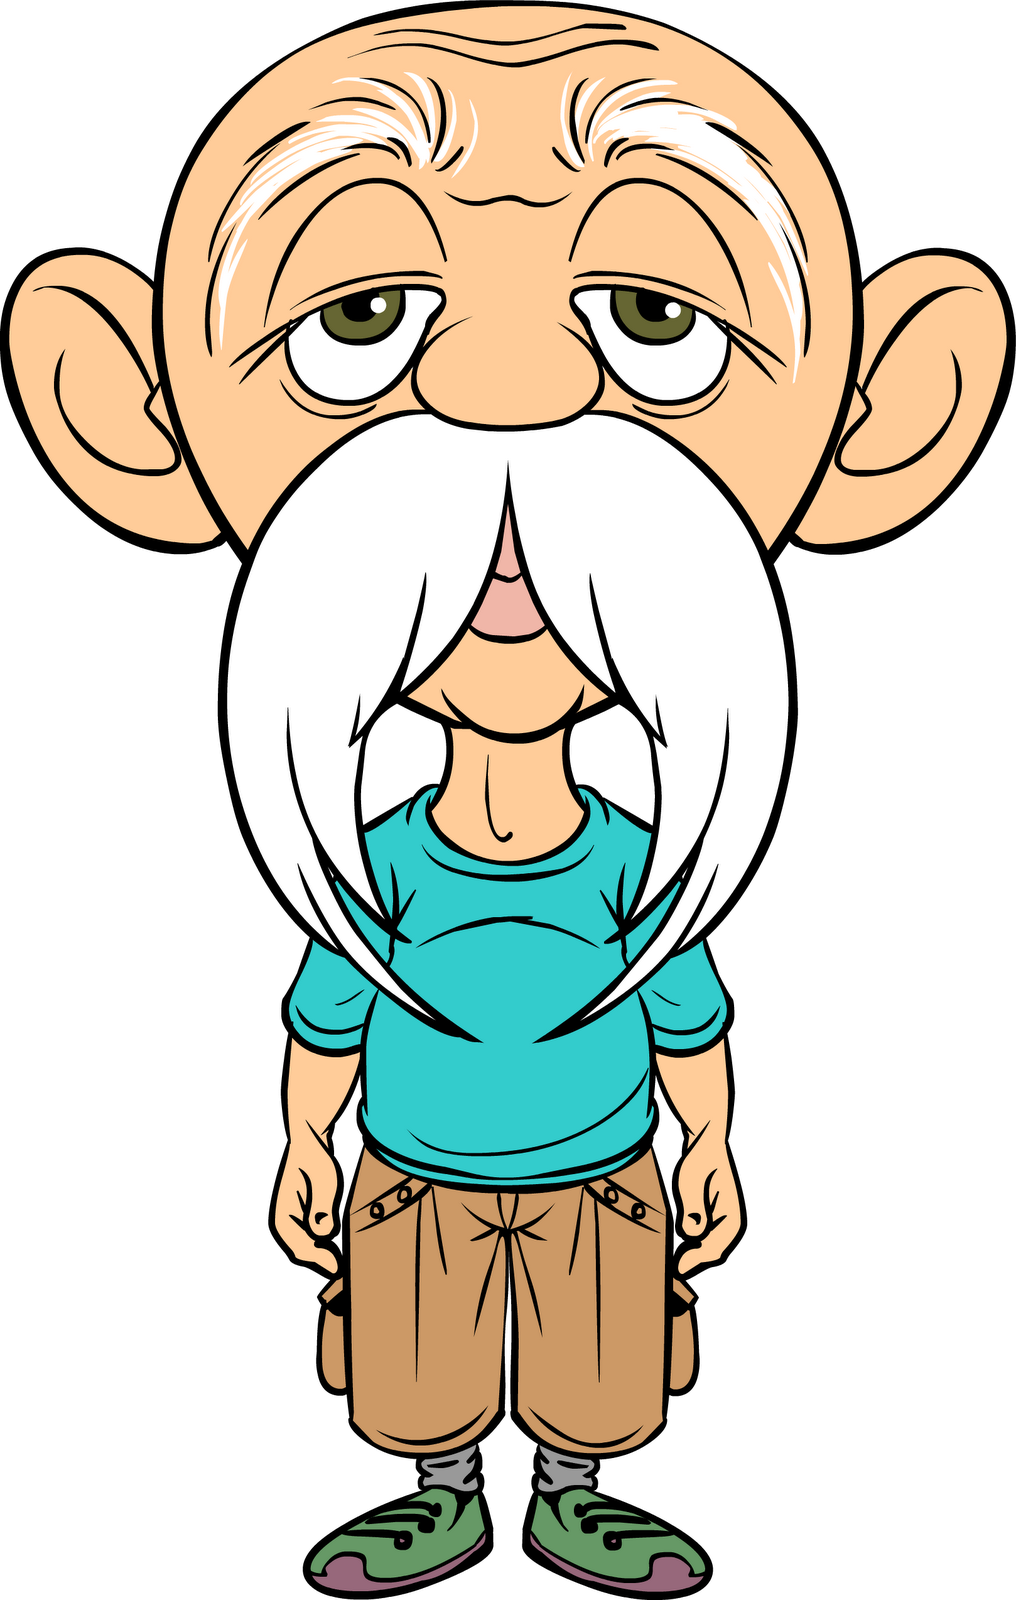 old man cartoon szukaj w google m czy ni pinterest cartoon rh pinterest com old man clip art images old man clip art black and white